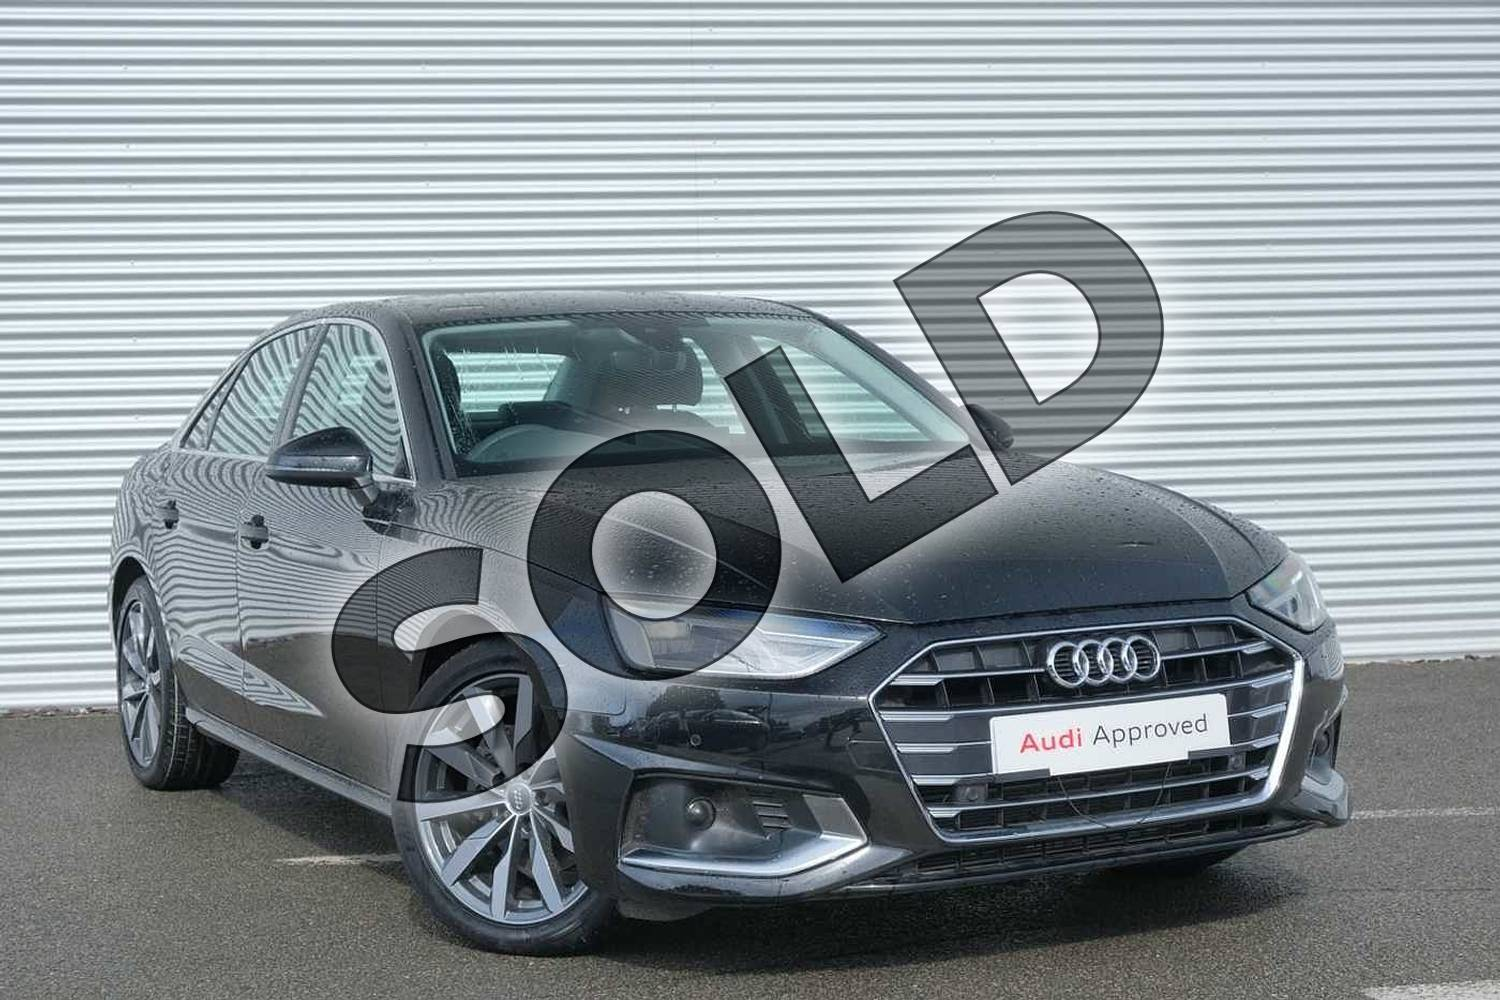 2020 Audi A4 Diesel Saloon 30 TDI Sport 4dr S Tronic in Myth Black Metallic at Coventry Audi